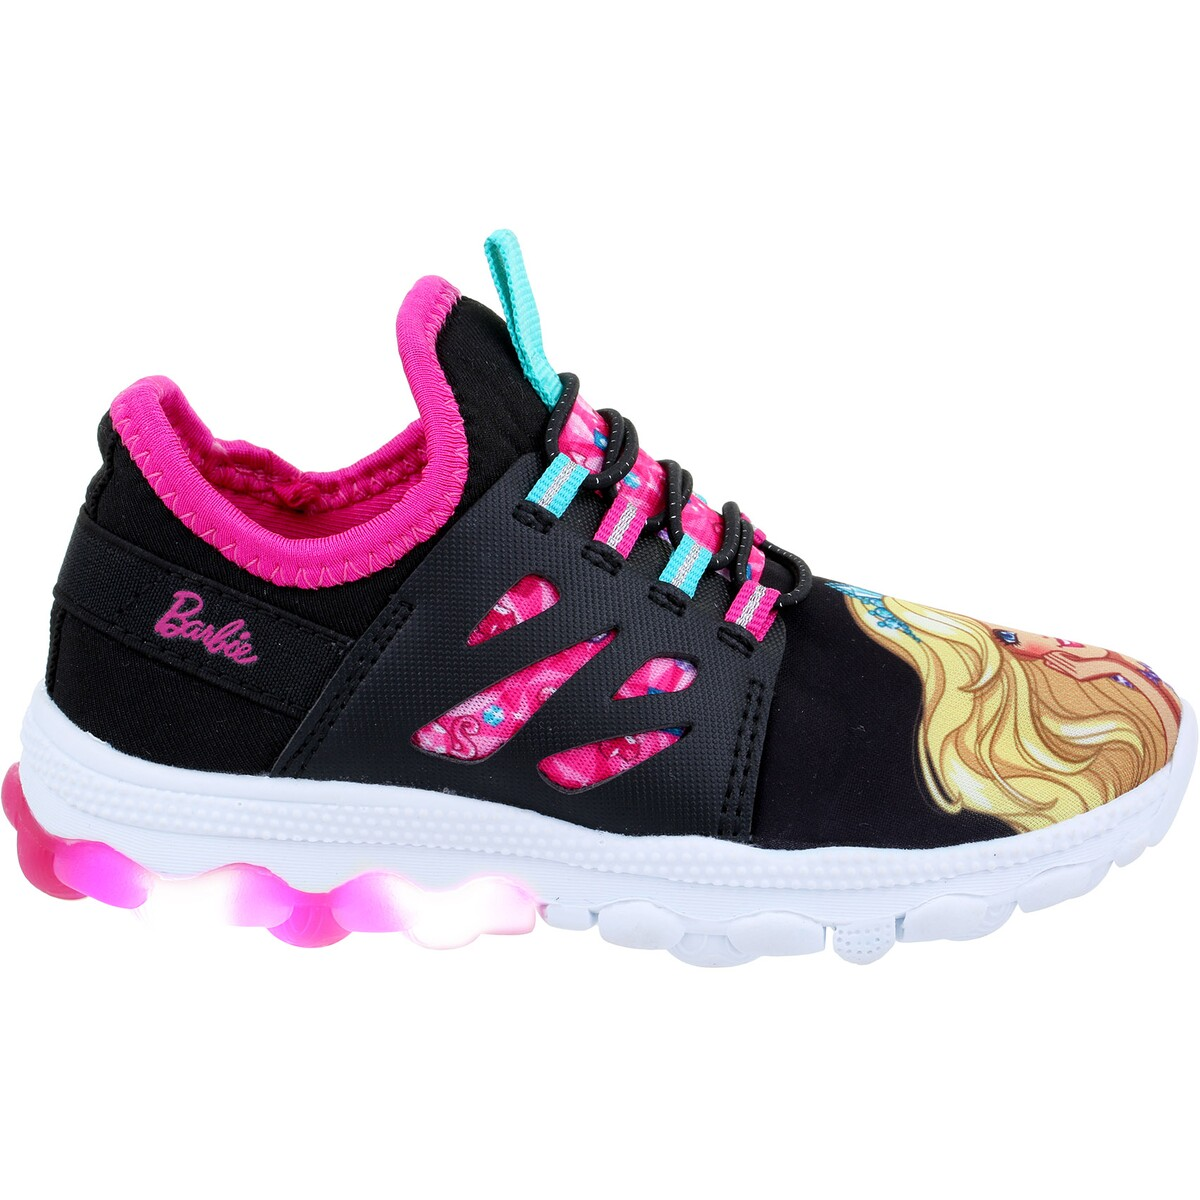 Infant Baby Products Online Shopping Barbie Infant Girls Light Up Shoes Black Big W